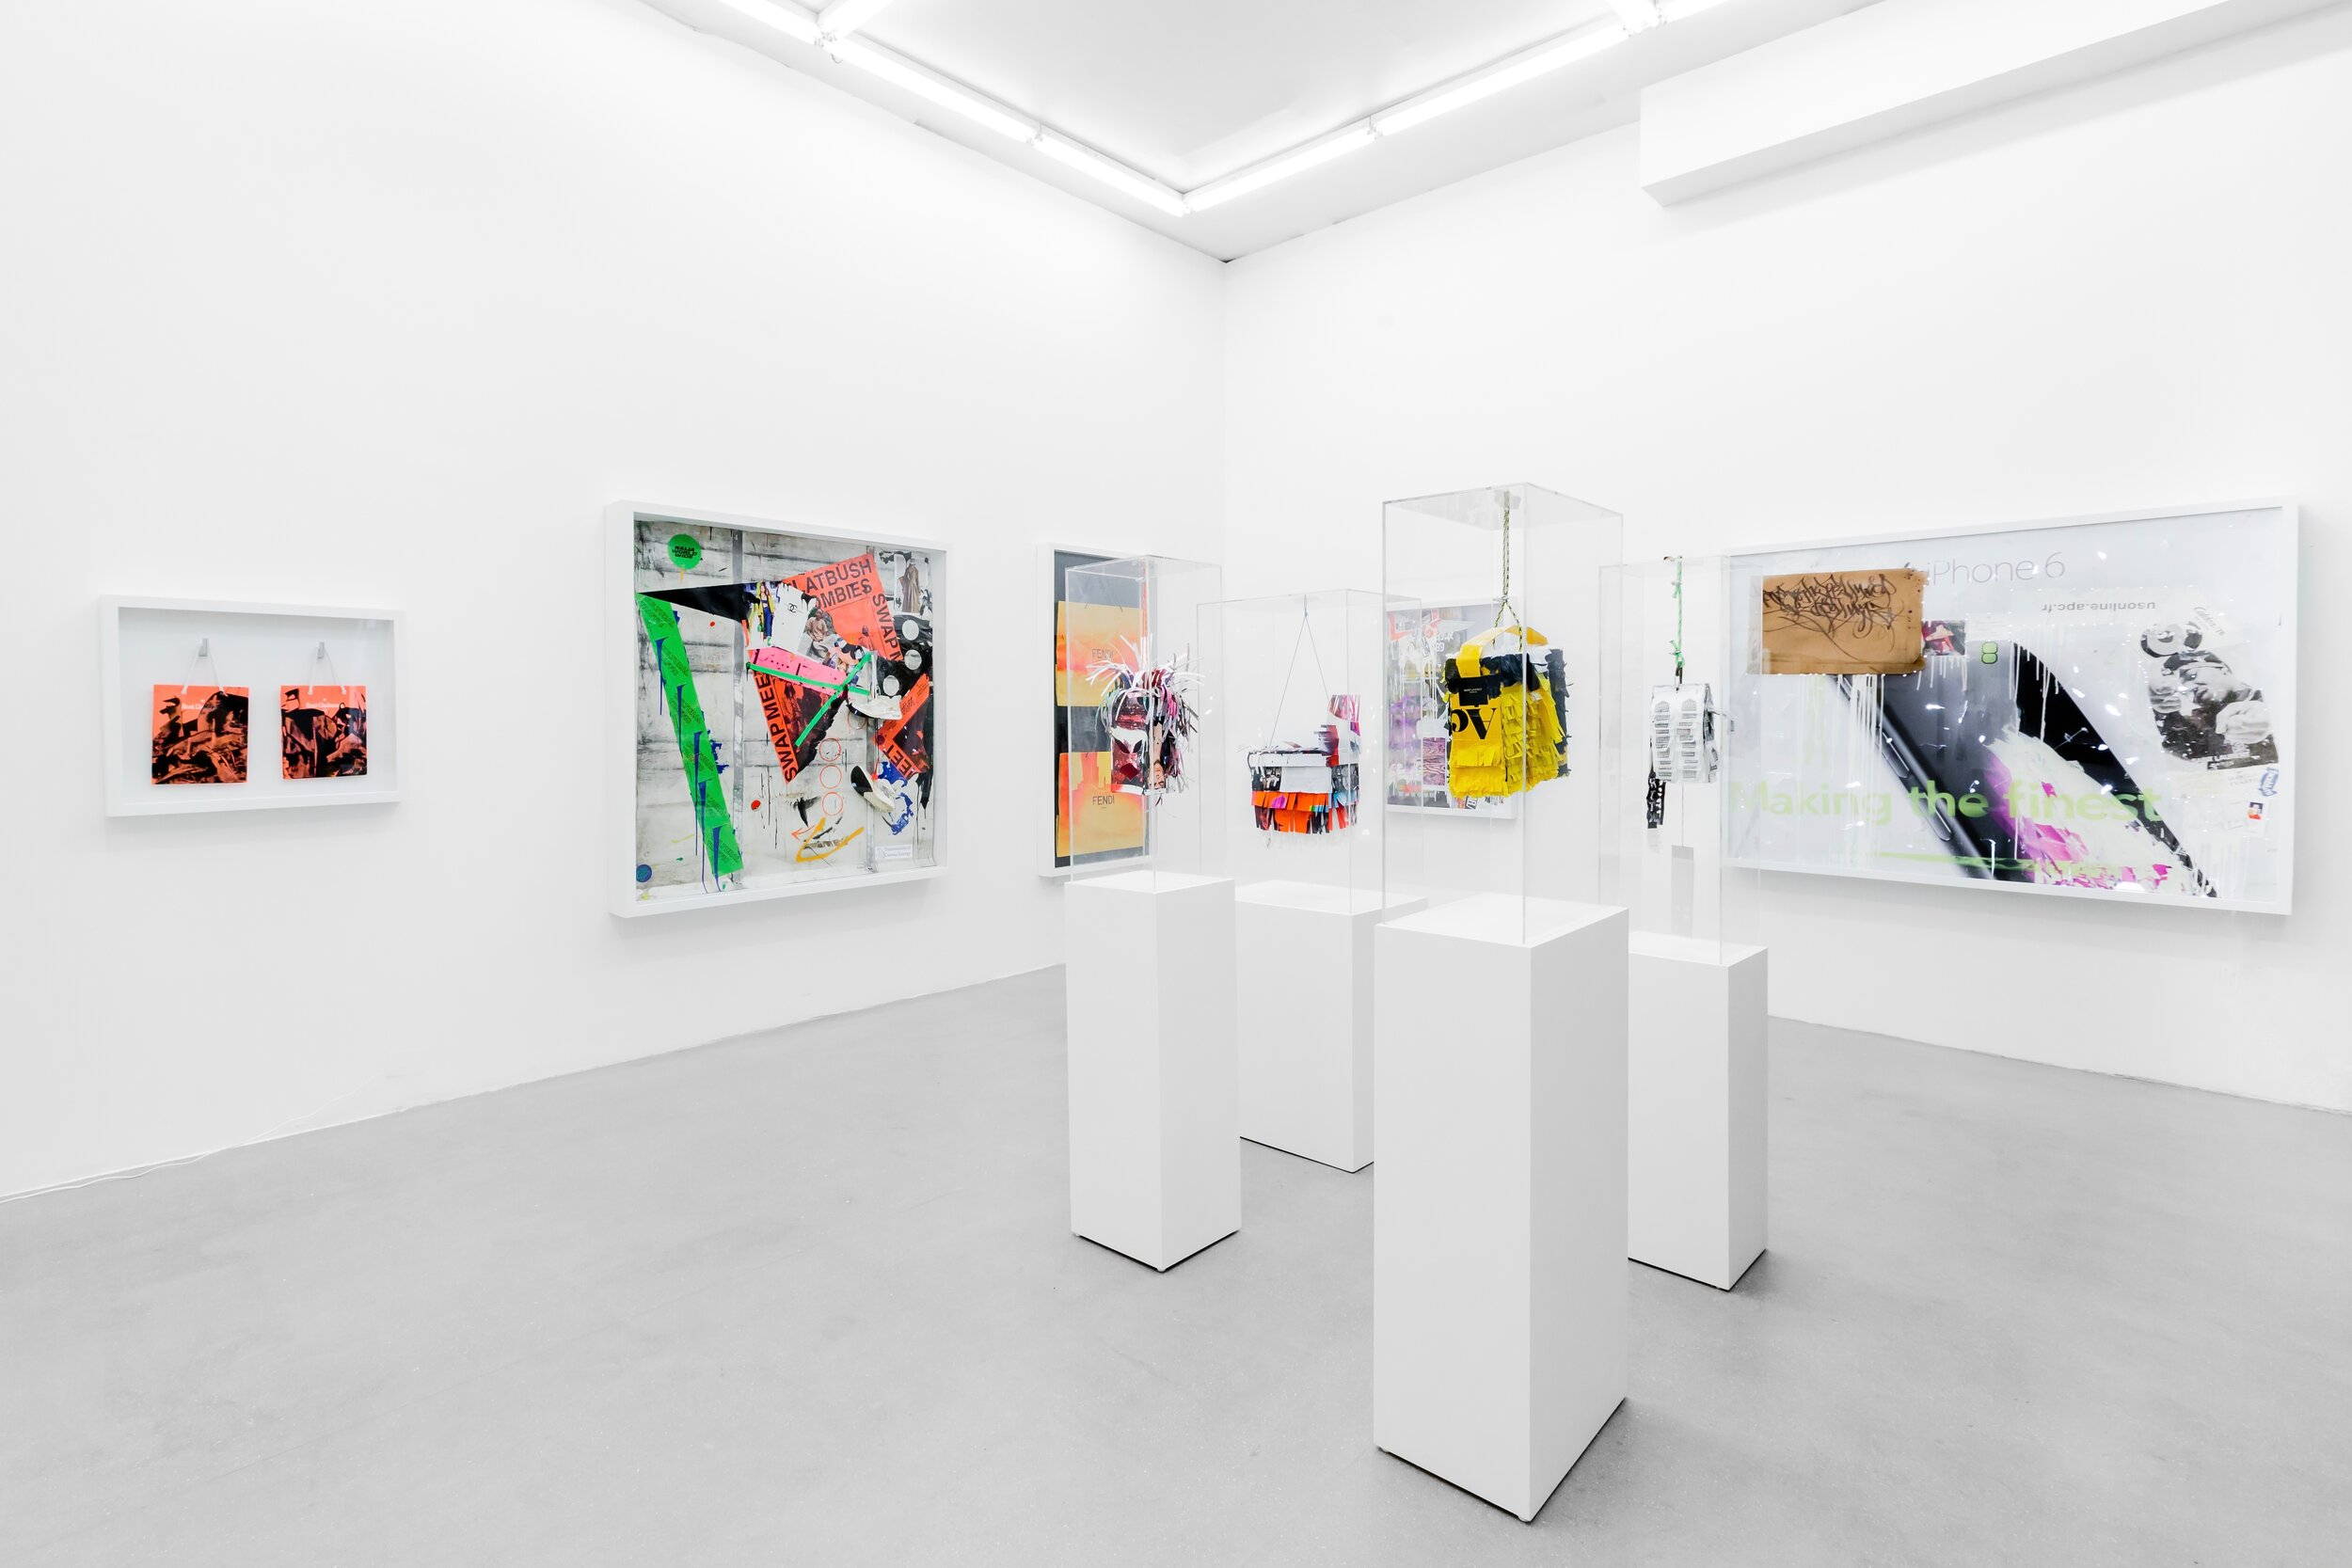 """Installation View,  Detourned , exhibition by Melvin """"Grave"""" Guzman, ABXY Gallery, 2019 